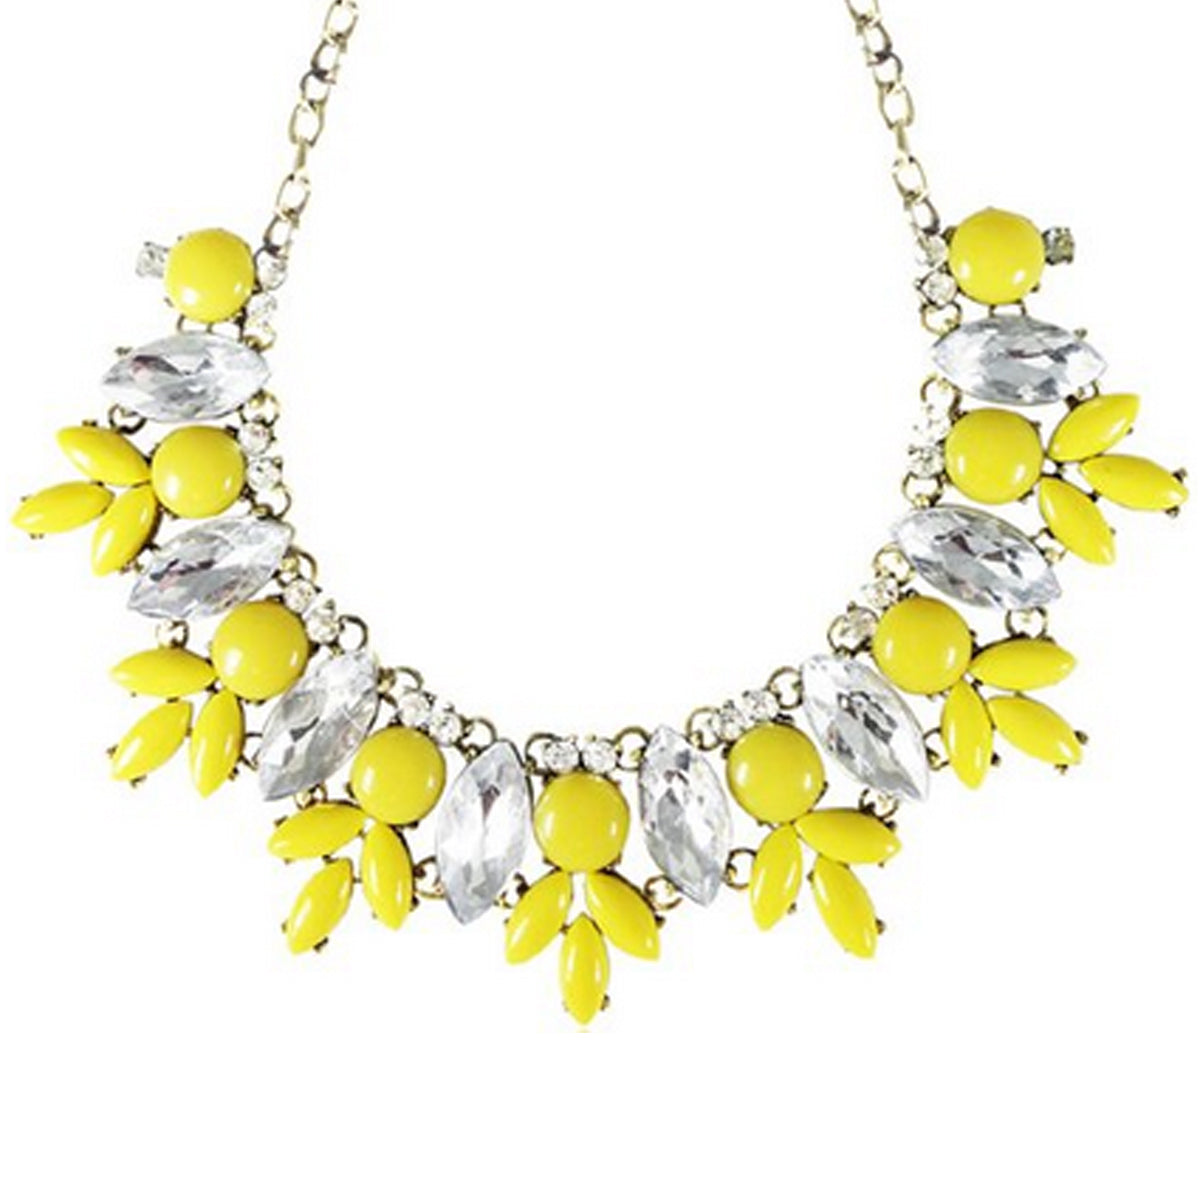 Wrapables Yasmine Petals Statement Necklace Bib Necklace